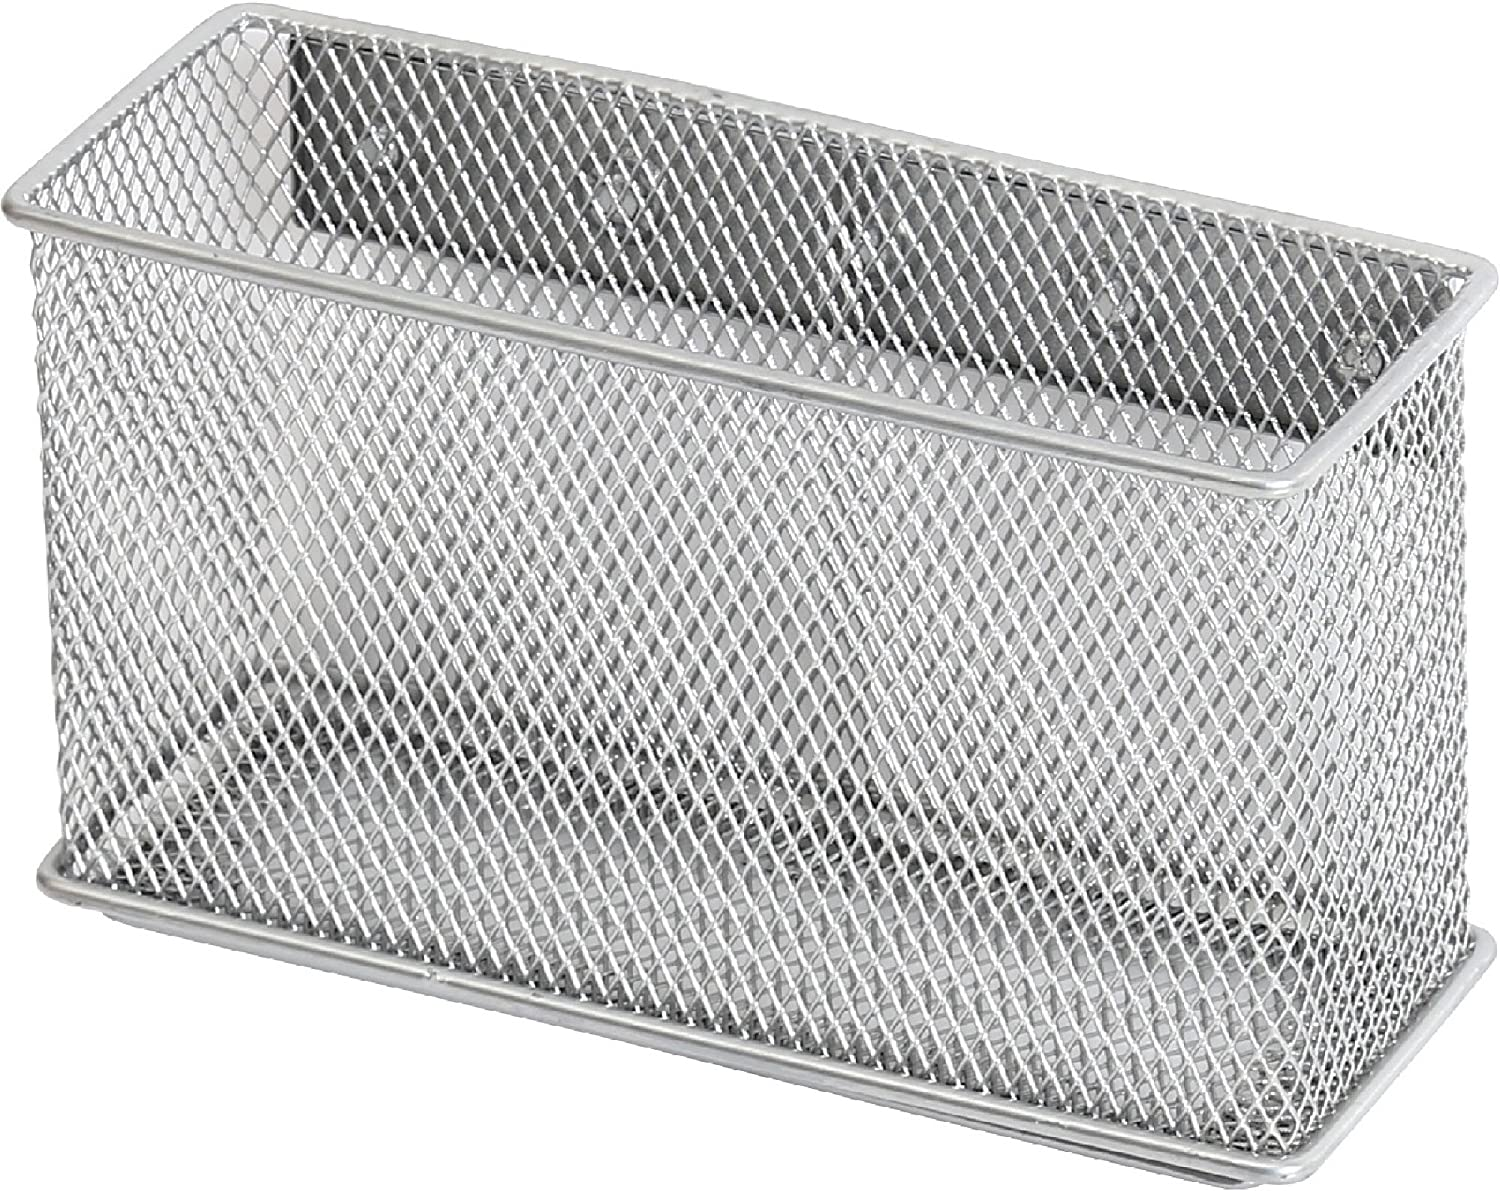 Container 1, Medium Desk Tray Office Supply Accessory Organizer Silver for Refrigerator//Microwave Oven or Magnetic Surface in Kitchen or Office YBM HOME Ybmhome Wire Mesh Magnetic Storage Basket